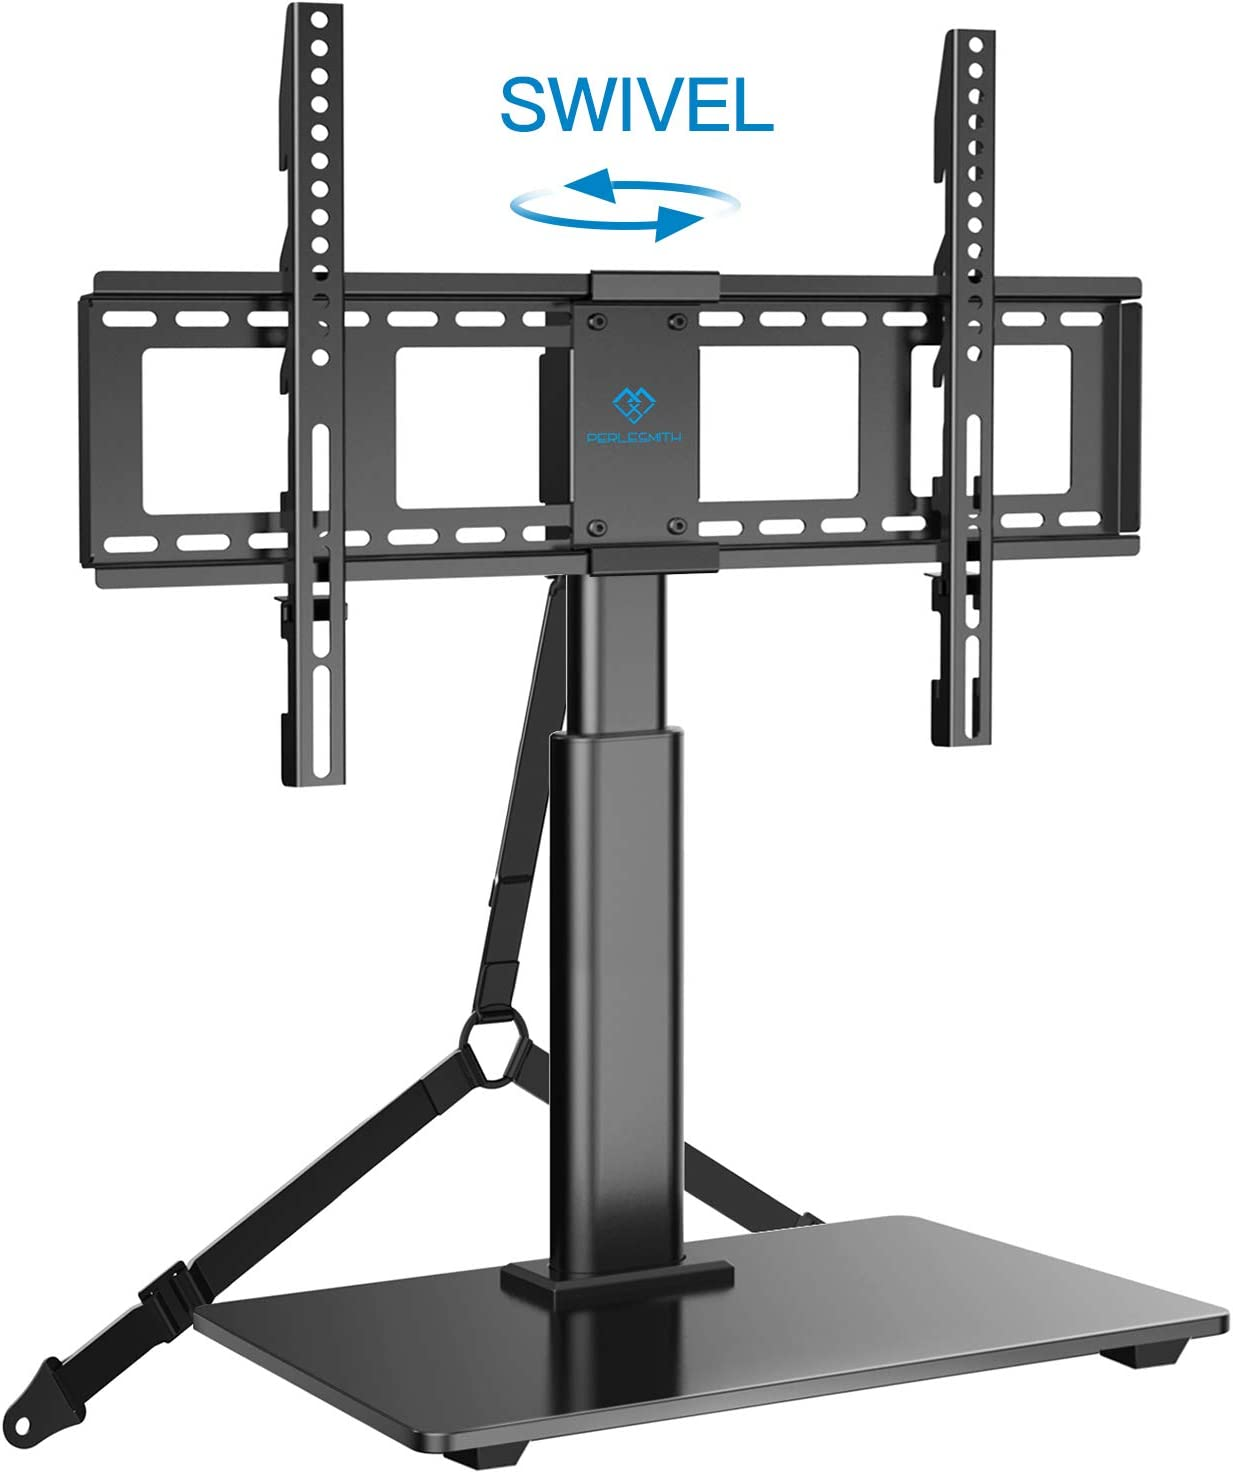 PERLESMITH Swivel TV Stand Universal Table Top TV Base for 32 to 65 inch LCD LED OLED 4K Flat Screen TVs - Height Adjustable TV Mount Stand with Safe TV Anti-tip Cable, VESA 600x400mm